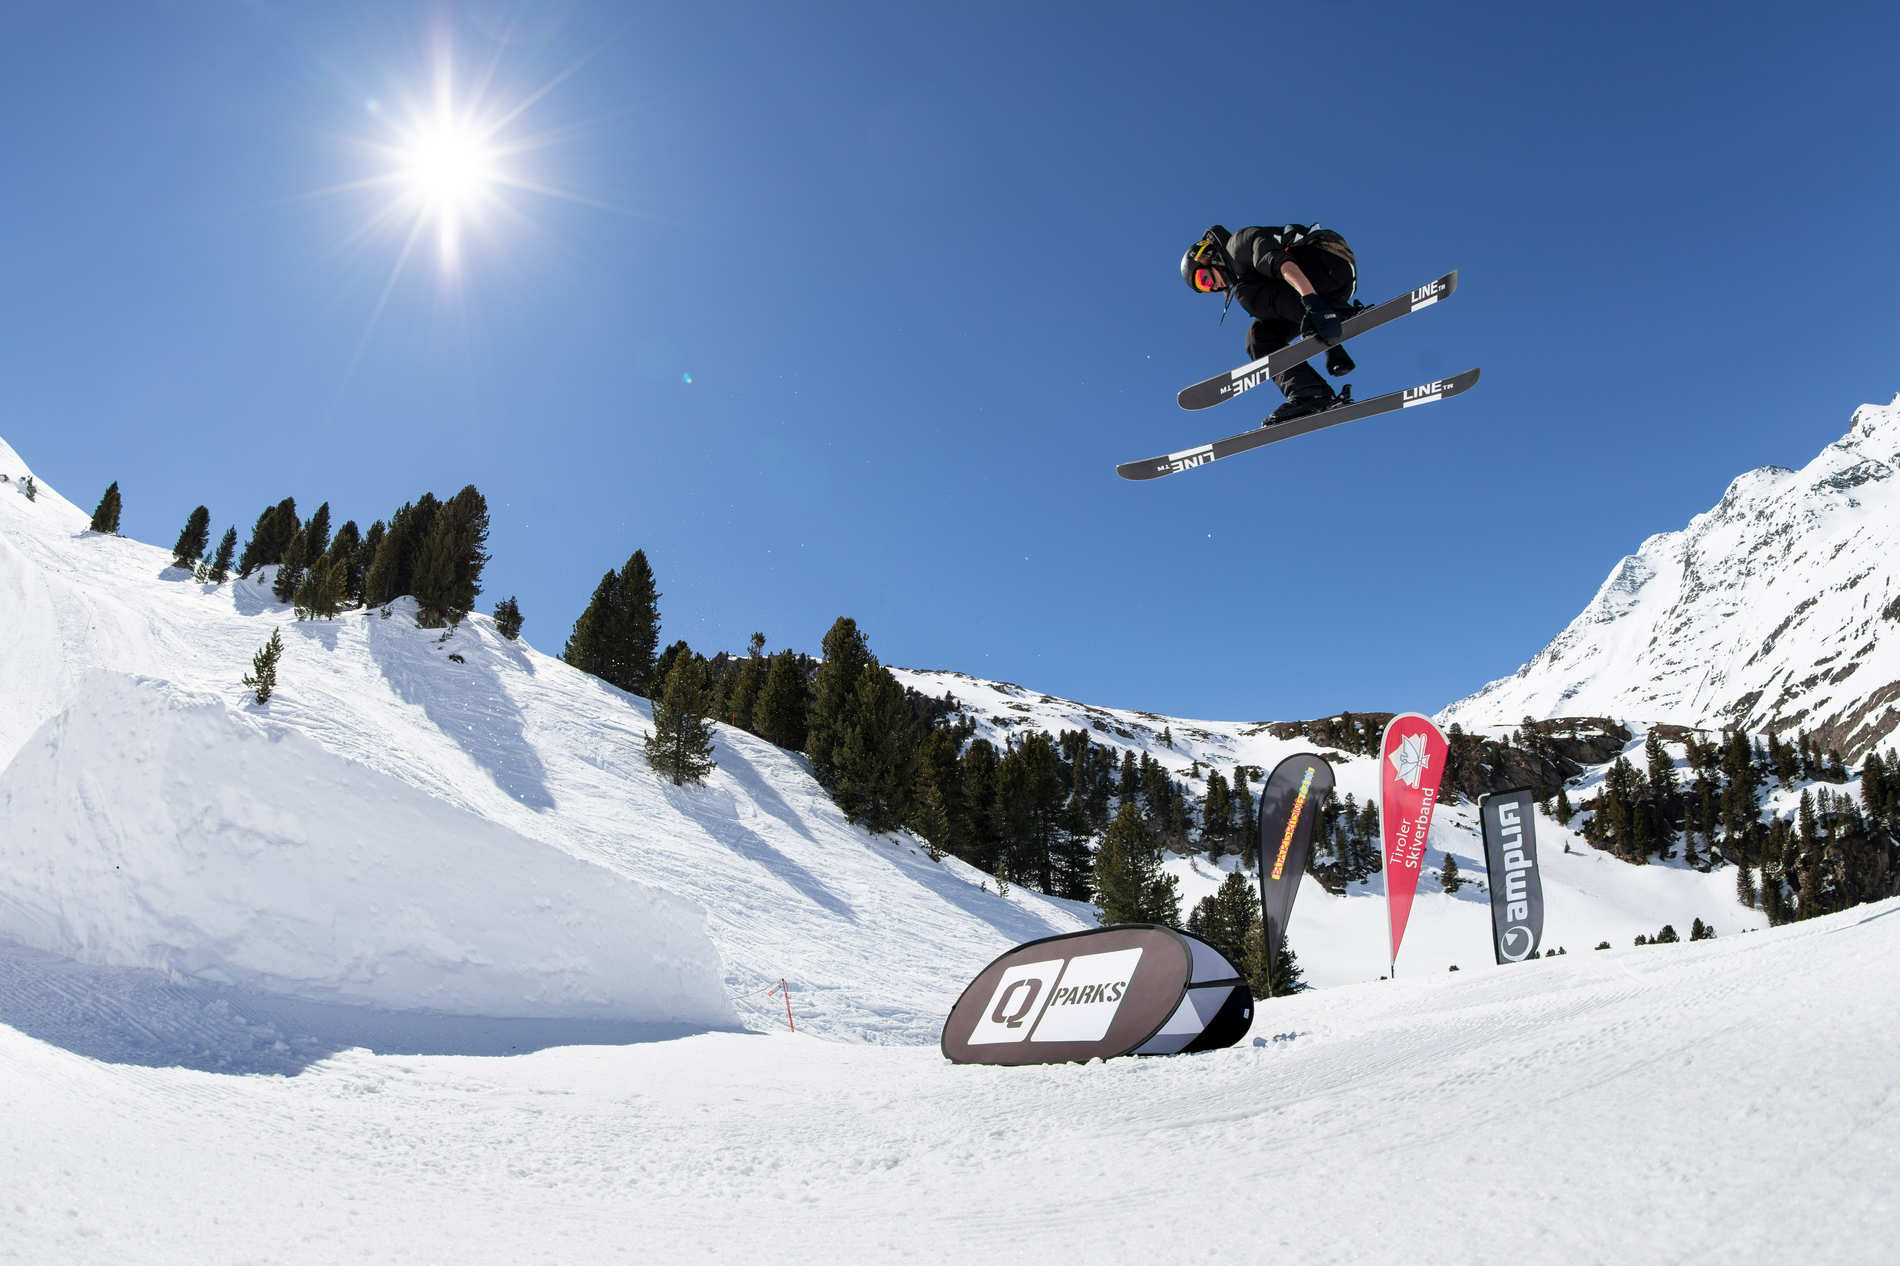 obergurgl 31 03 2019 action fs unknown patrick steiner qparks 002